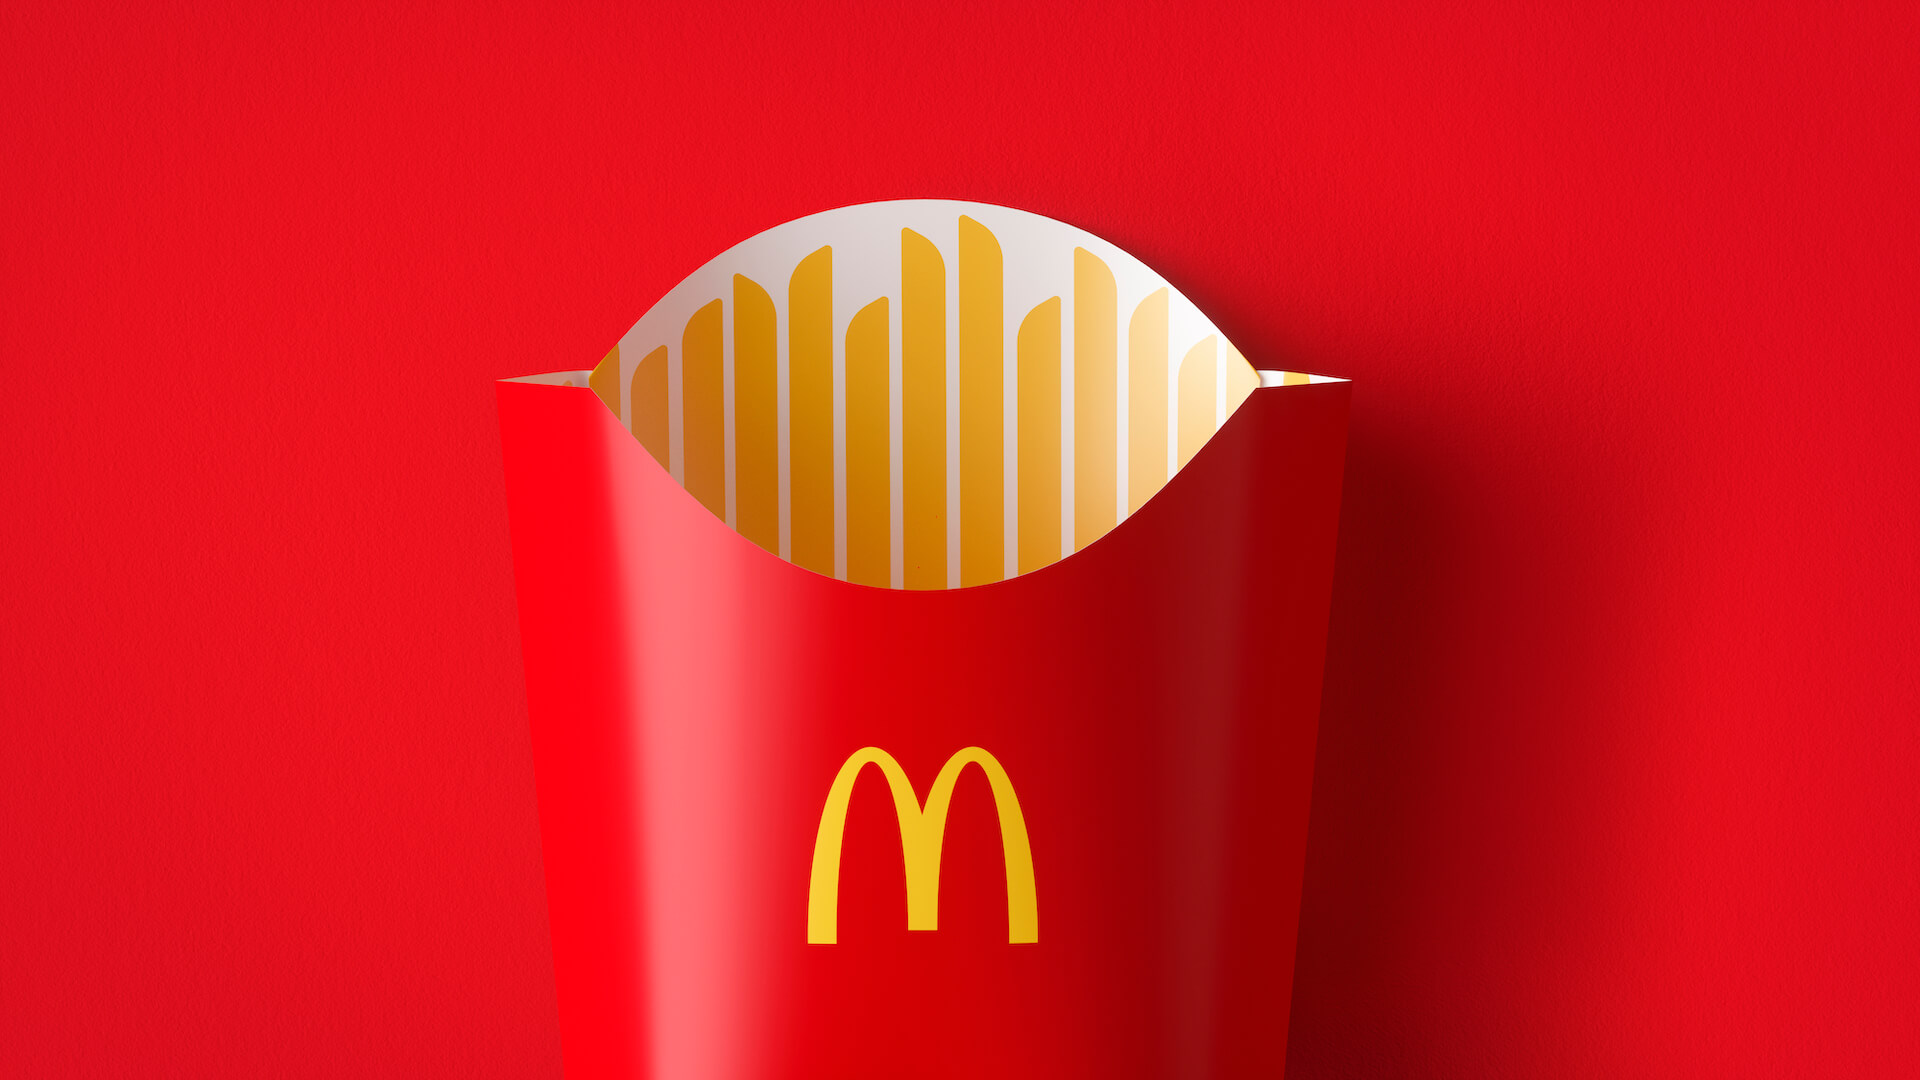 Pearlfisher Redesigns McDonald's' Global Packaging System